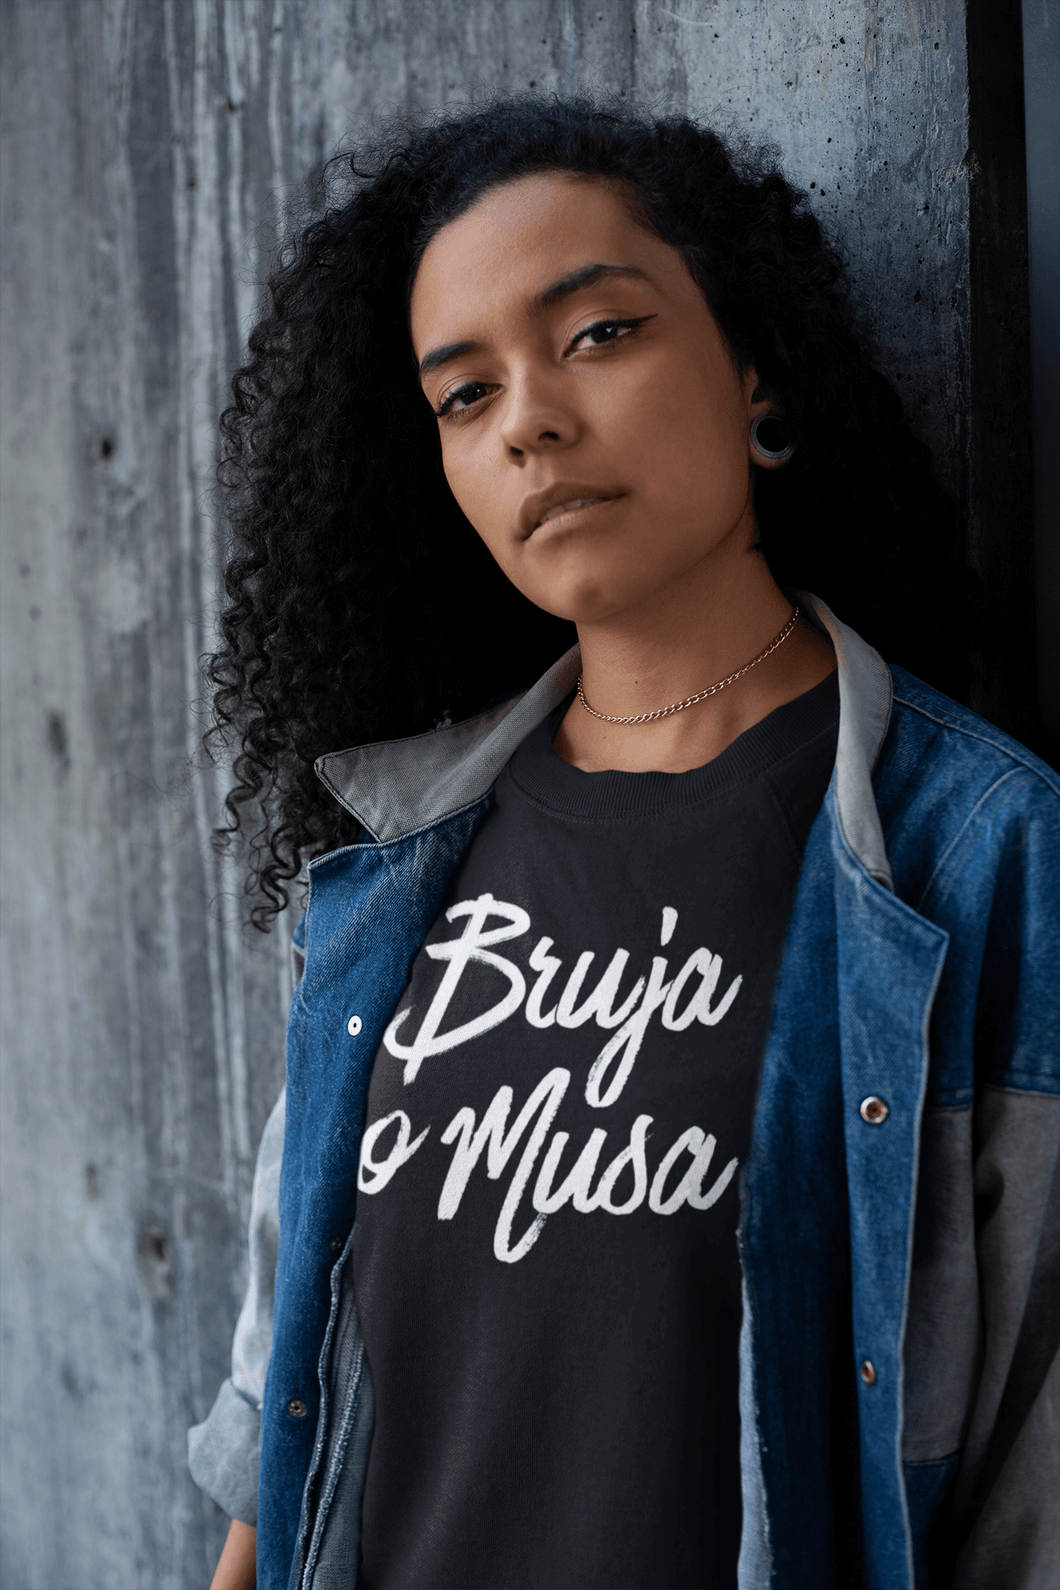 LSC Swag Model Black Bruja o Musa Eco-Friendly Women's T-Shirt